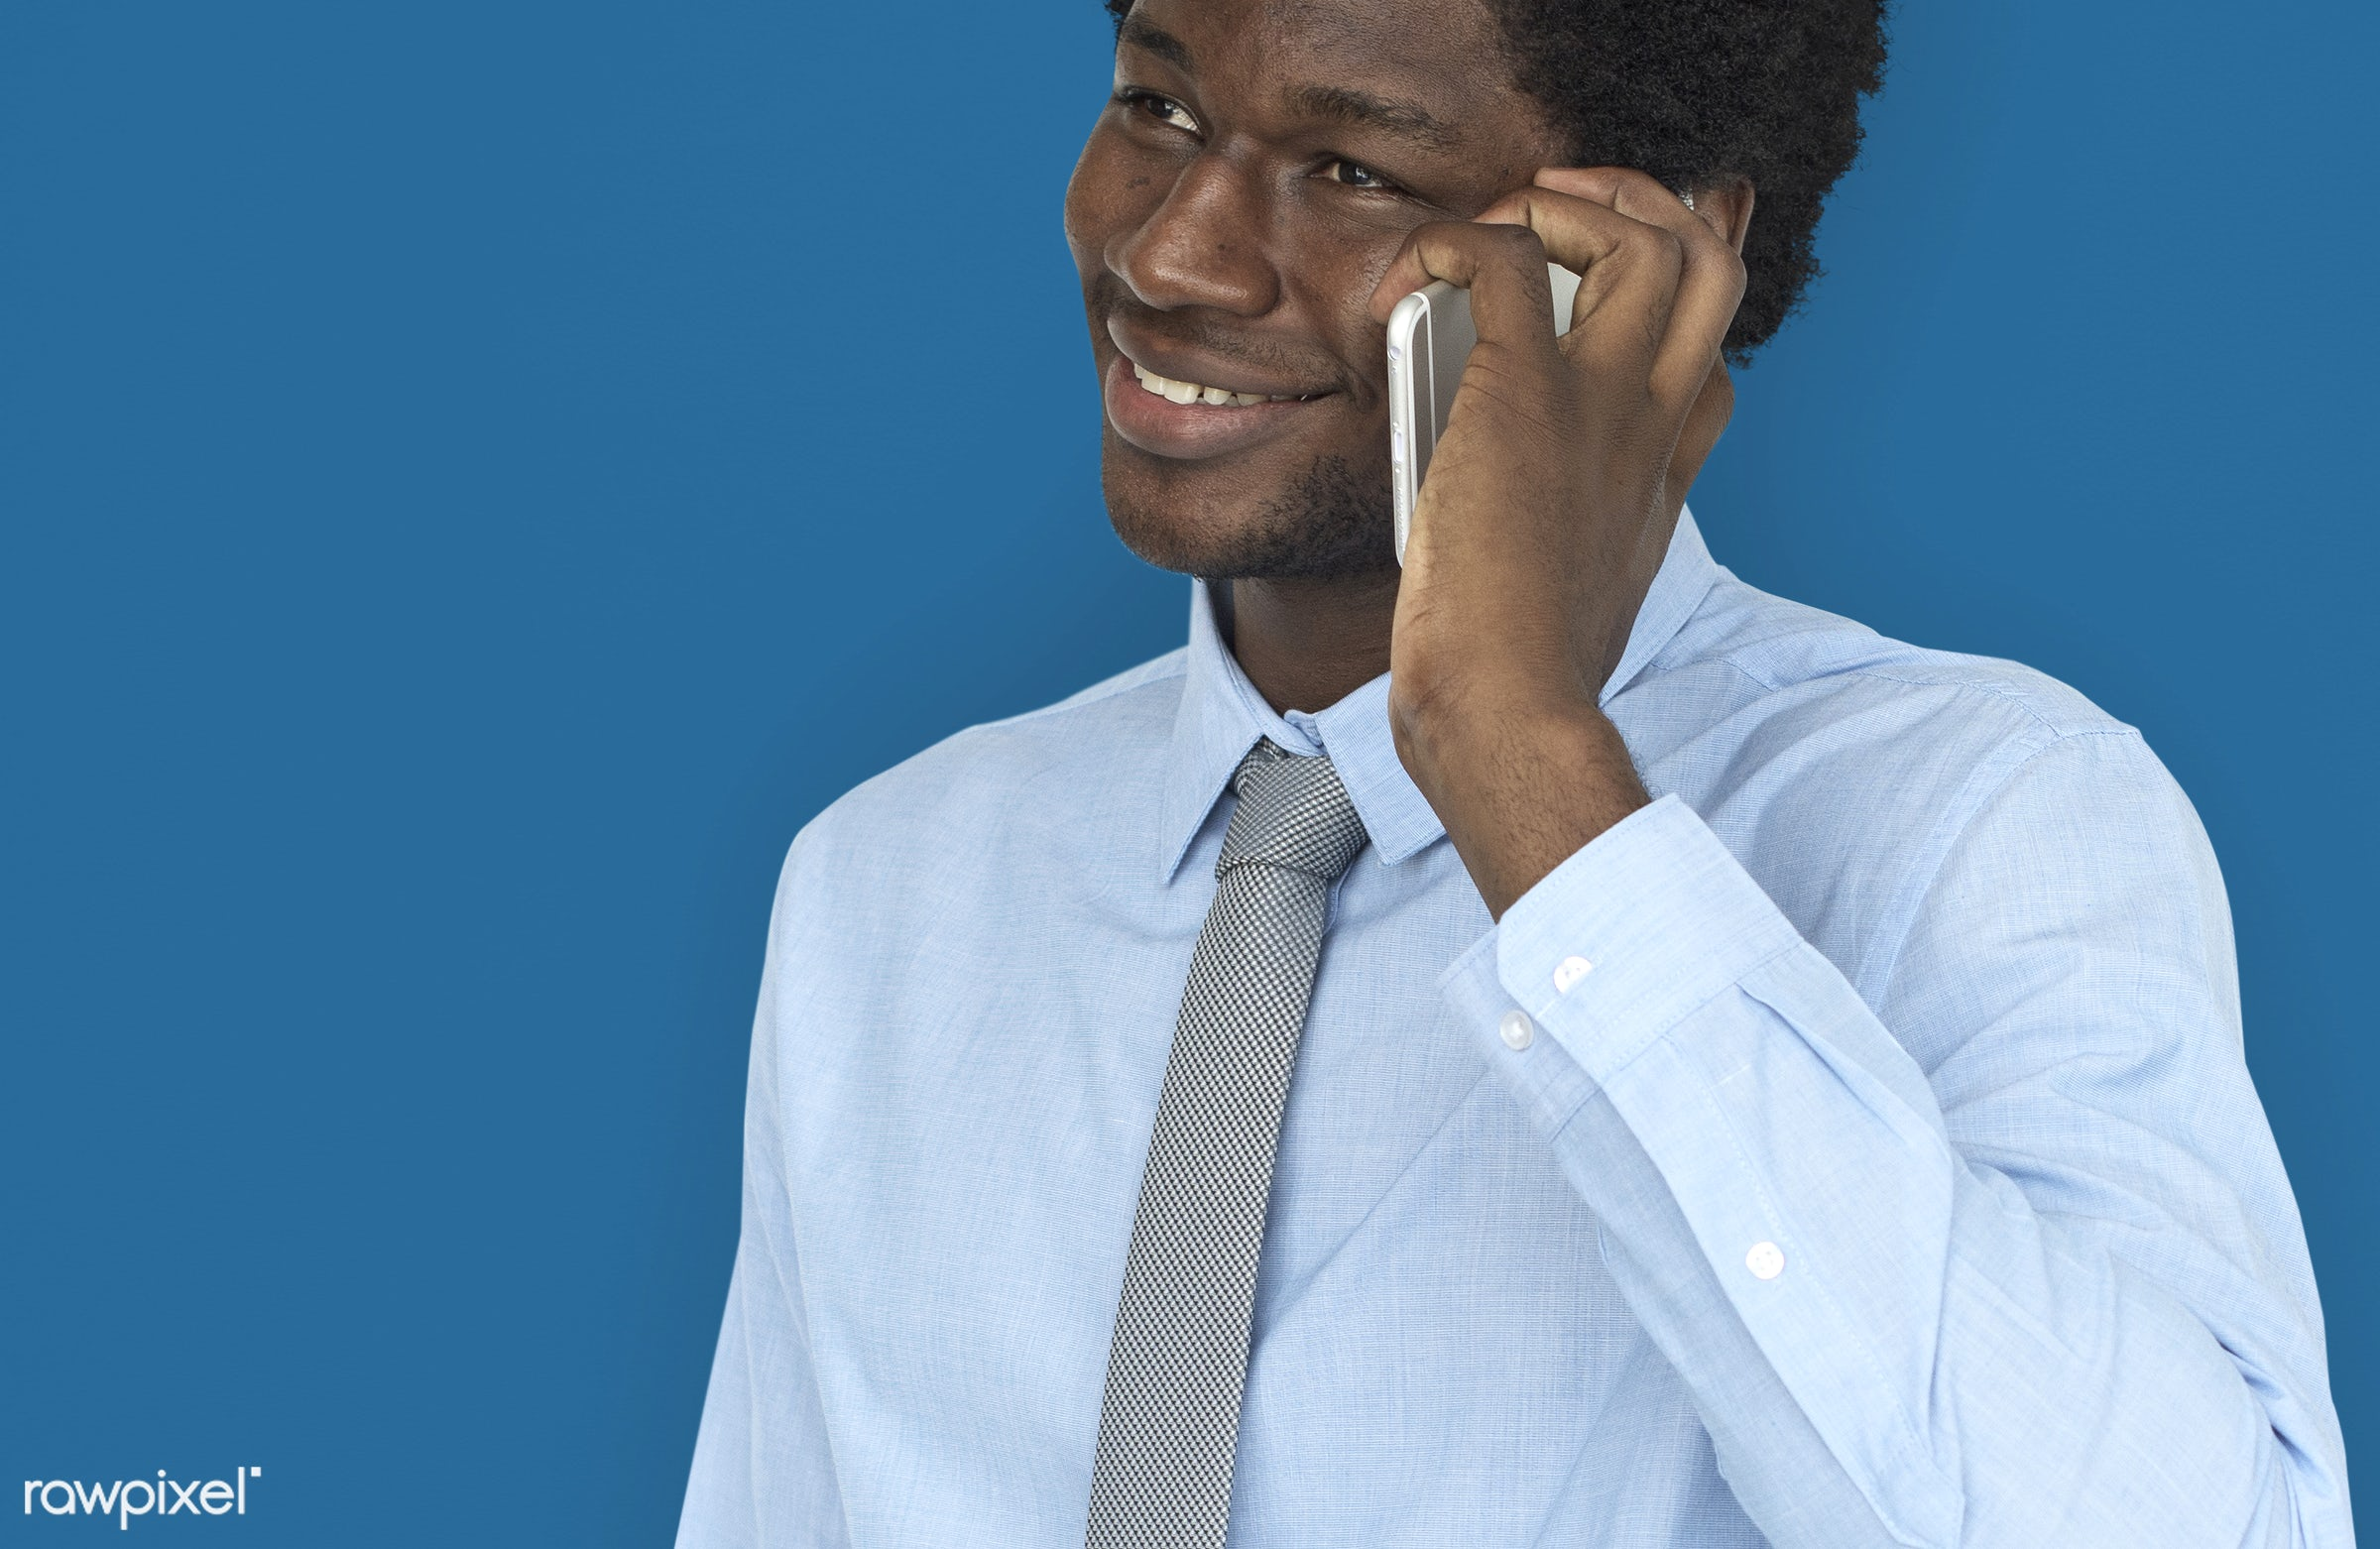 expression, person, using, discussion, white collar worker, people, telecommunication, working, black, smiling, isolated,...